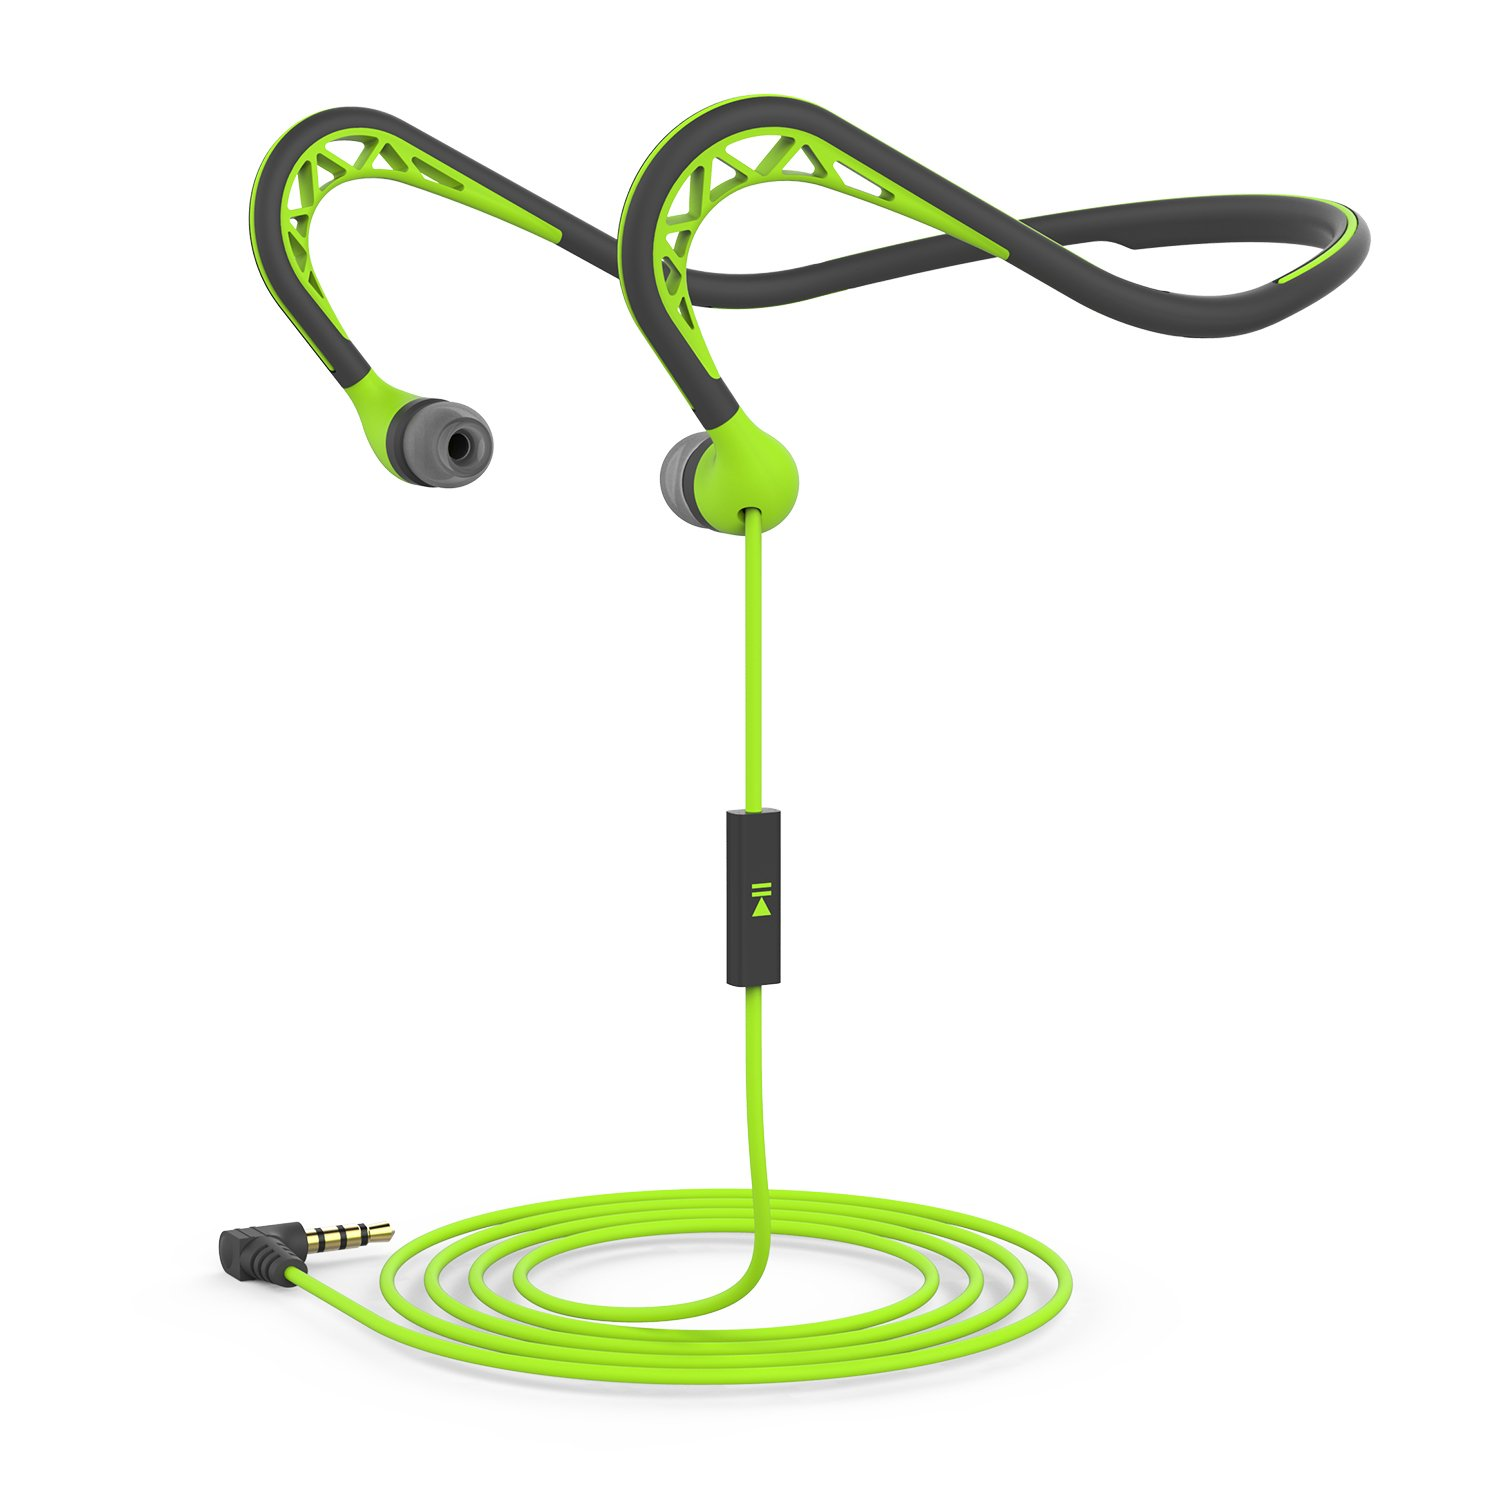 Neckband Sports Earbud, Workout Earphone with Microphone, Stereo Headset with Noise Isolating, Sweatproof In-Ear Headphone for iPhone Android, Green Shenzhen Willong Technology Co. Ltd H131